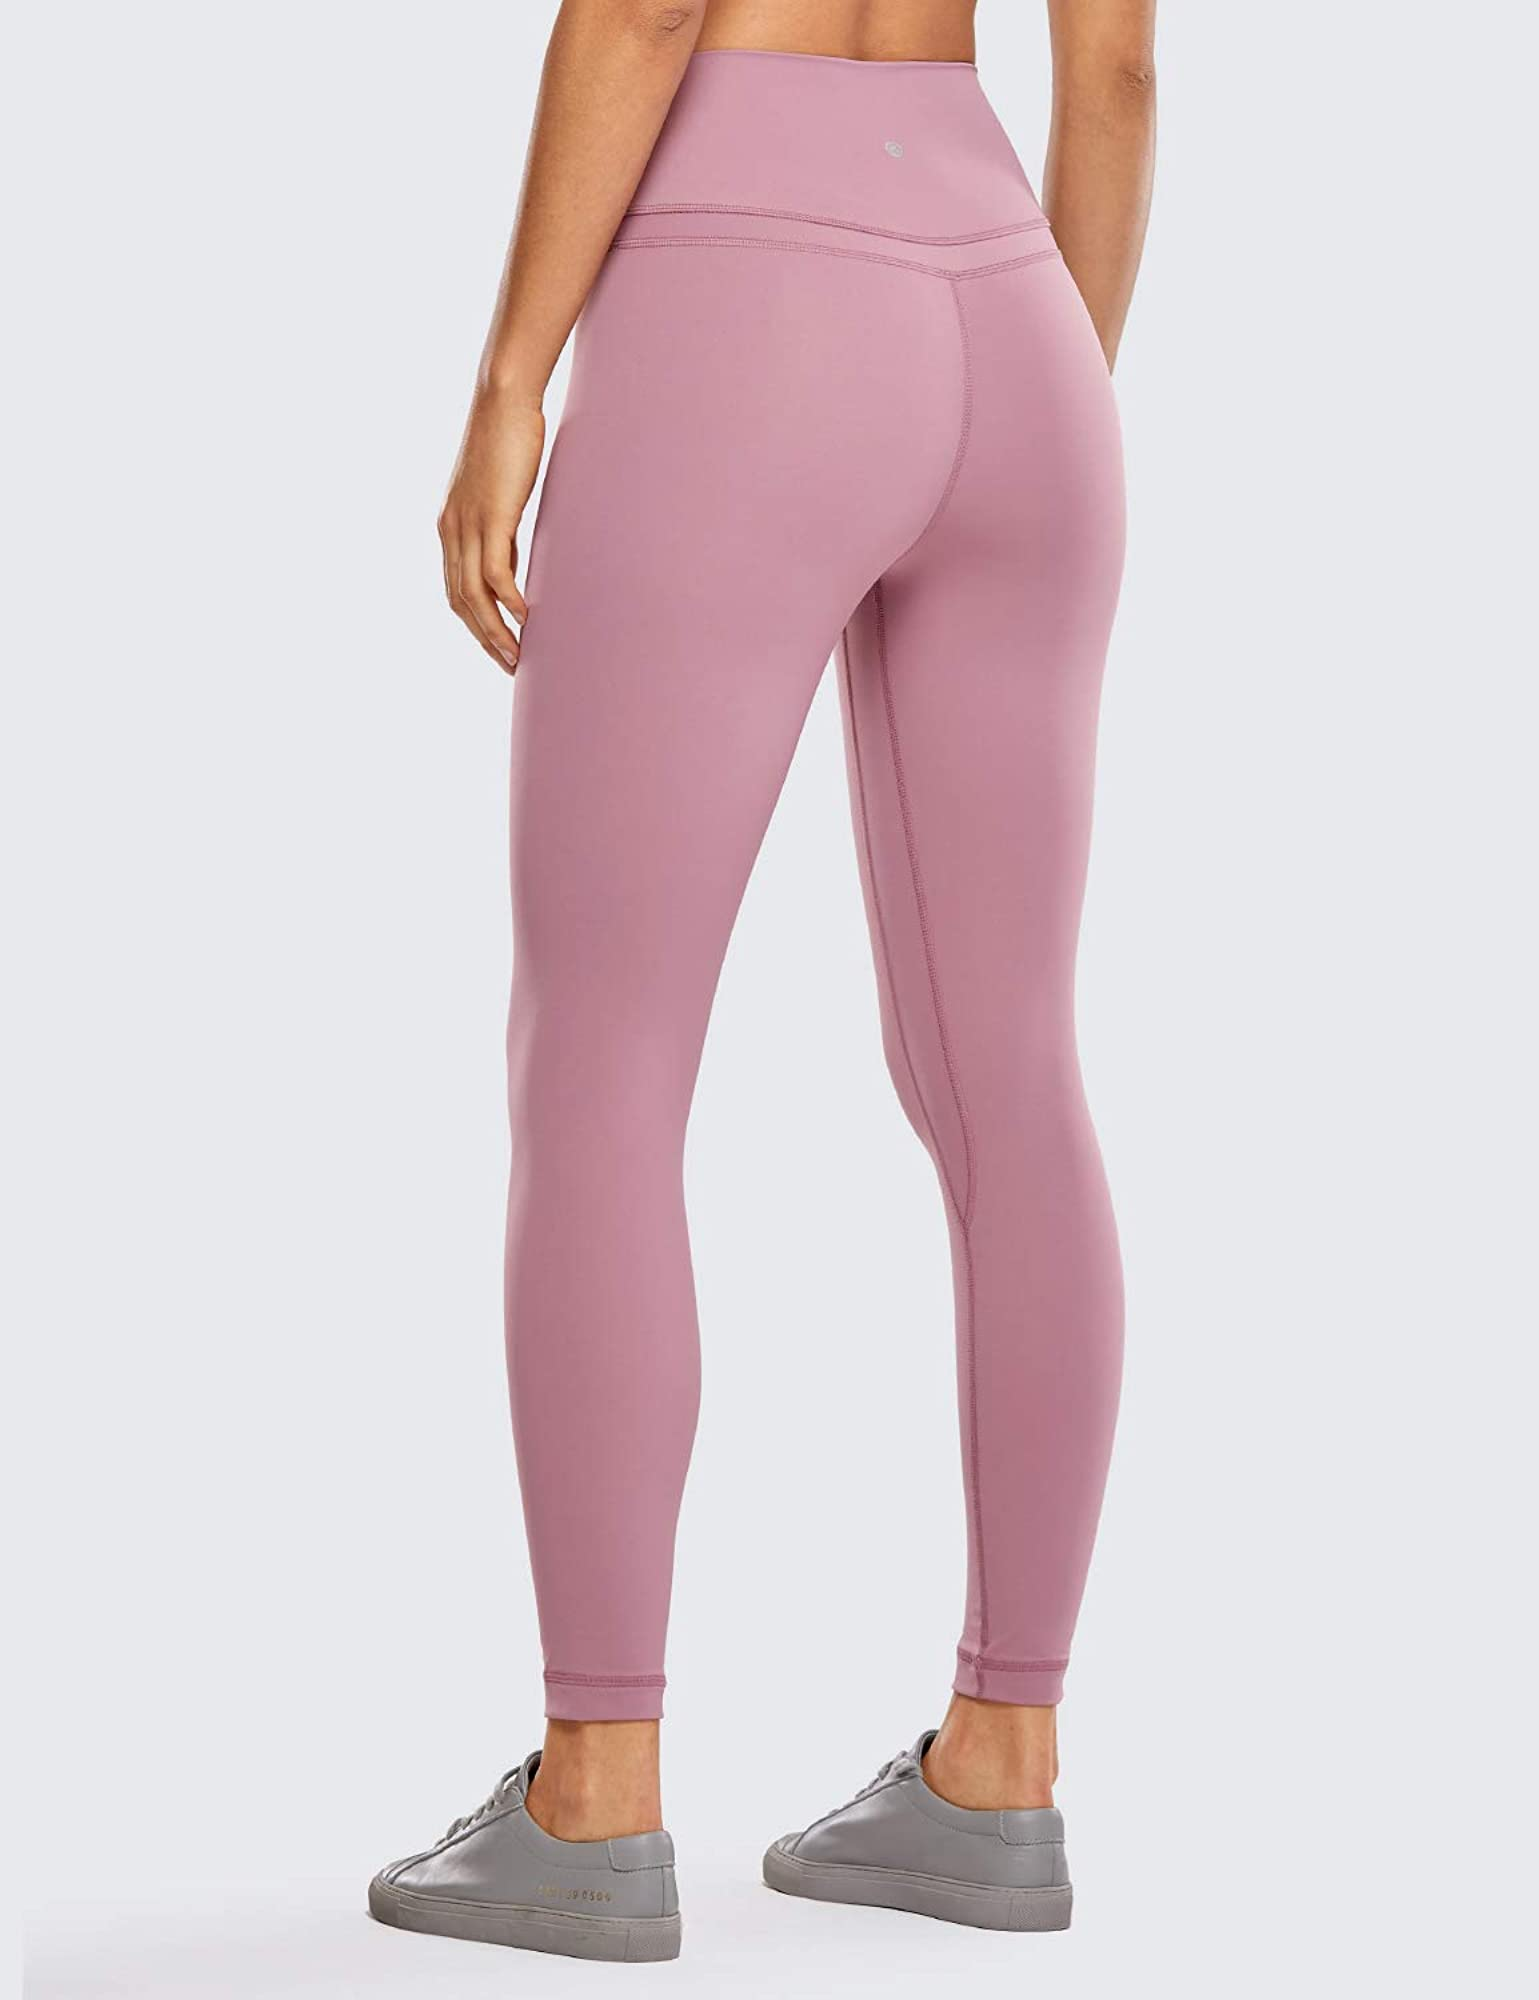 Women's High Waist Tight Yoga Pants - Workout Leggings